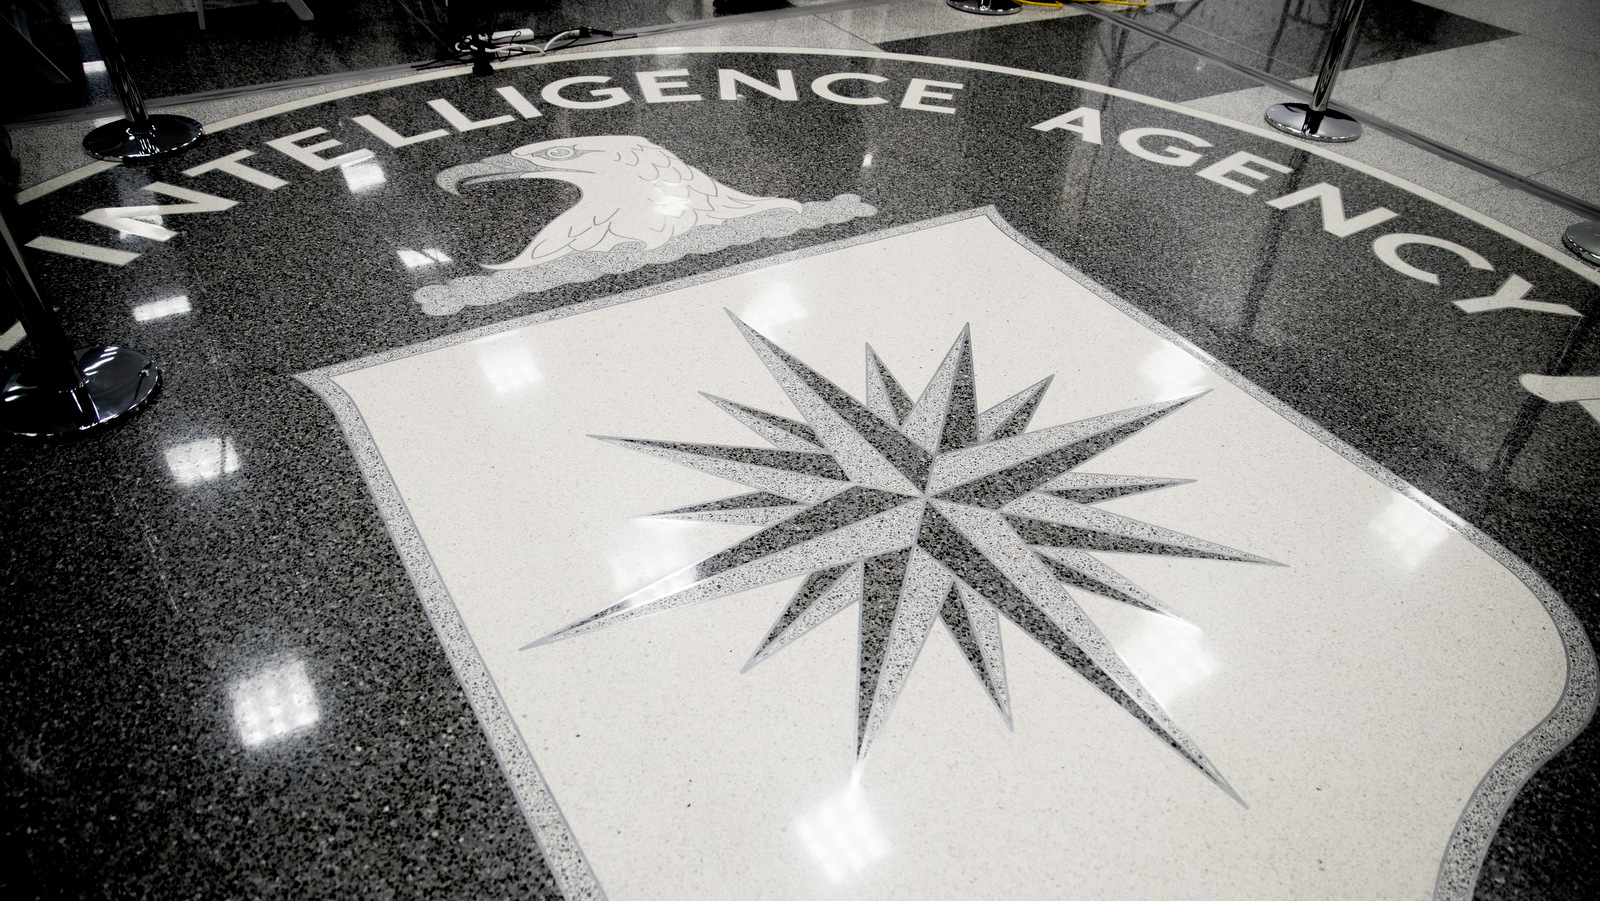 The floor of the main lobby of the Central Intelligence Agency in Langley, Va., Saturday, Jan. 21, 2017. (AP/Andrew Harnik)